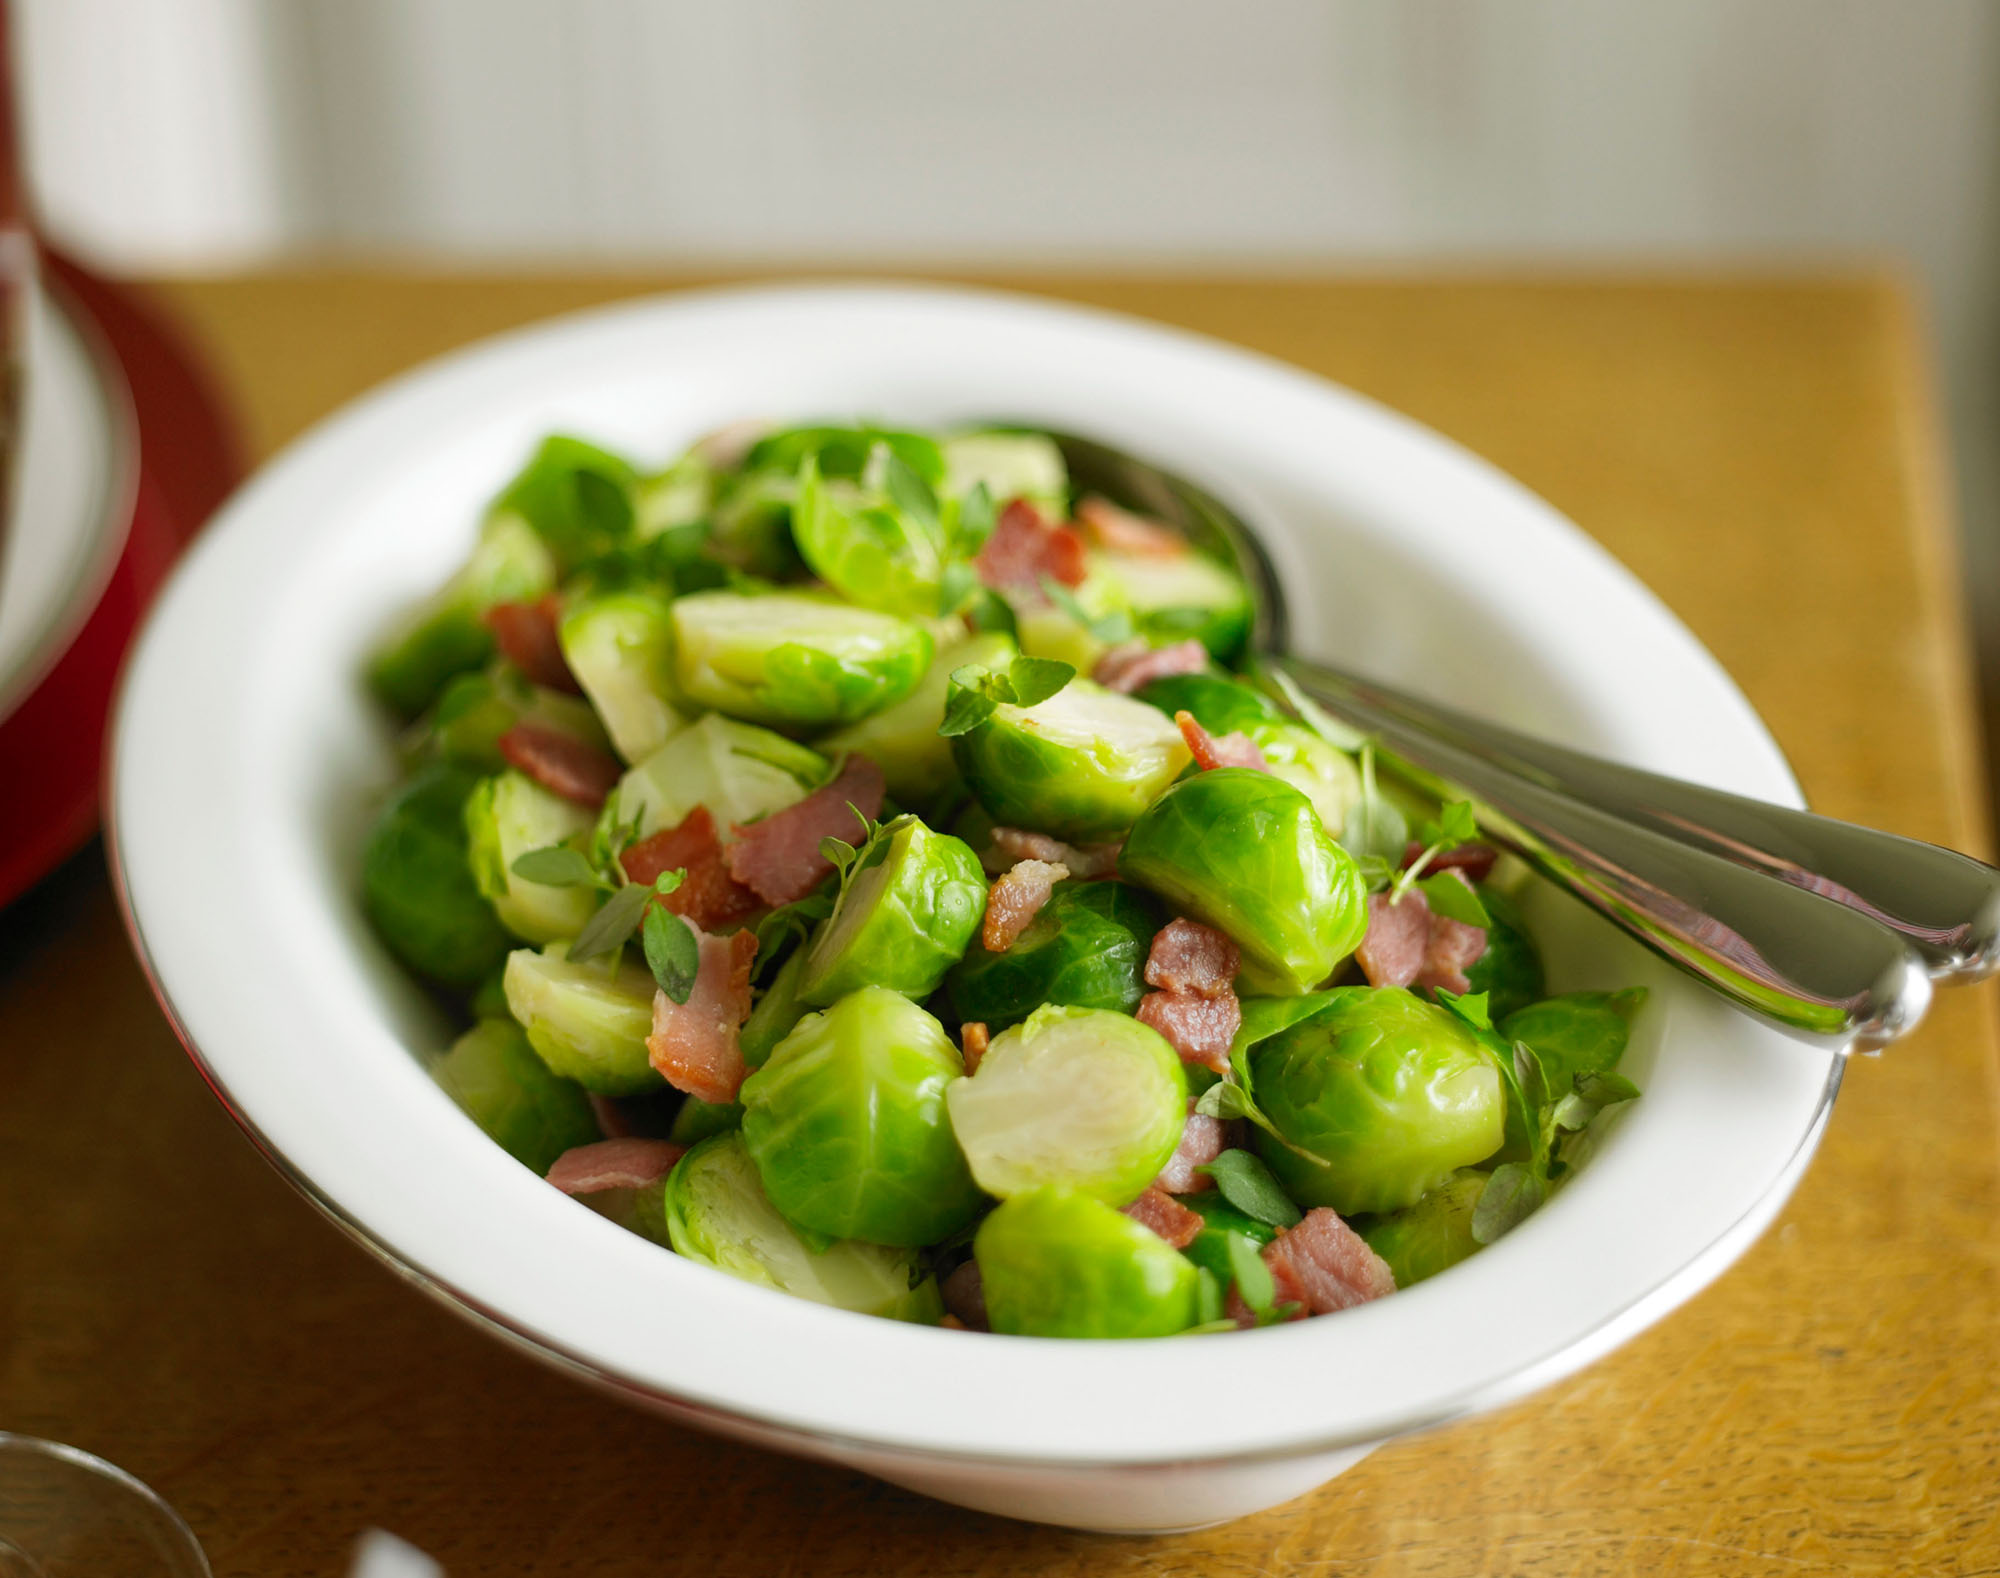 Give your traditional brussel sprouts side dish a makeover with our tasty twist